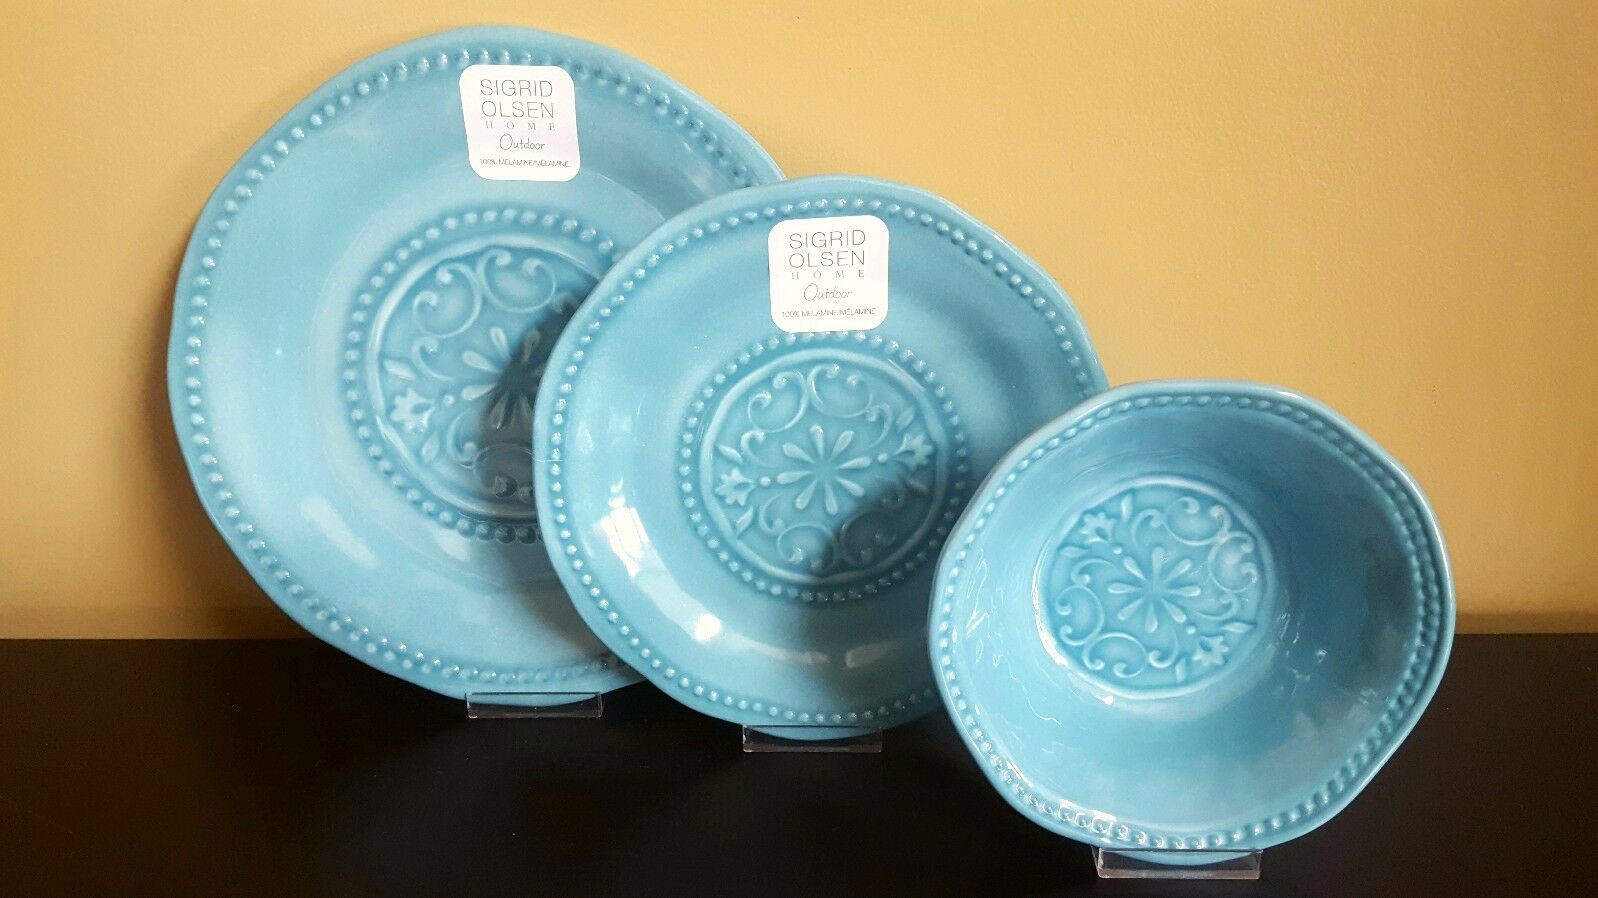 Sigrid Olsen Turquoise Medallion Hobnail Melamine Plates Bowls Dinnerware 12pc 1 of 4Only 2 available ... & SIGRID OLSEN TURQUOISE Medallion Hobnail Melamine Plates Bowls ...